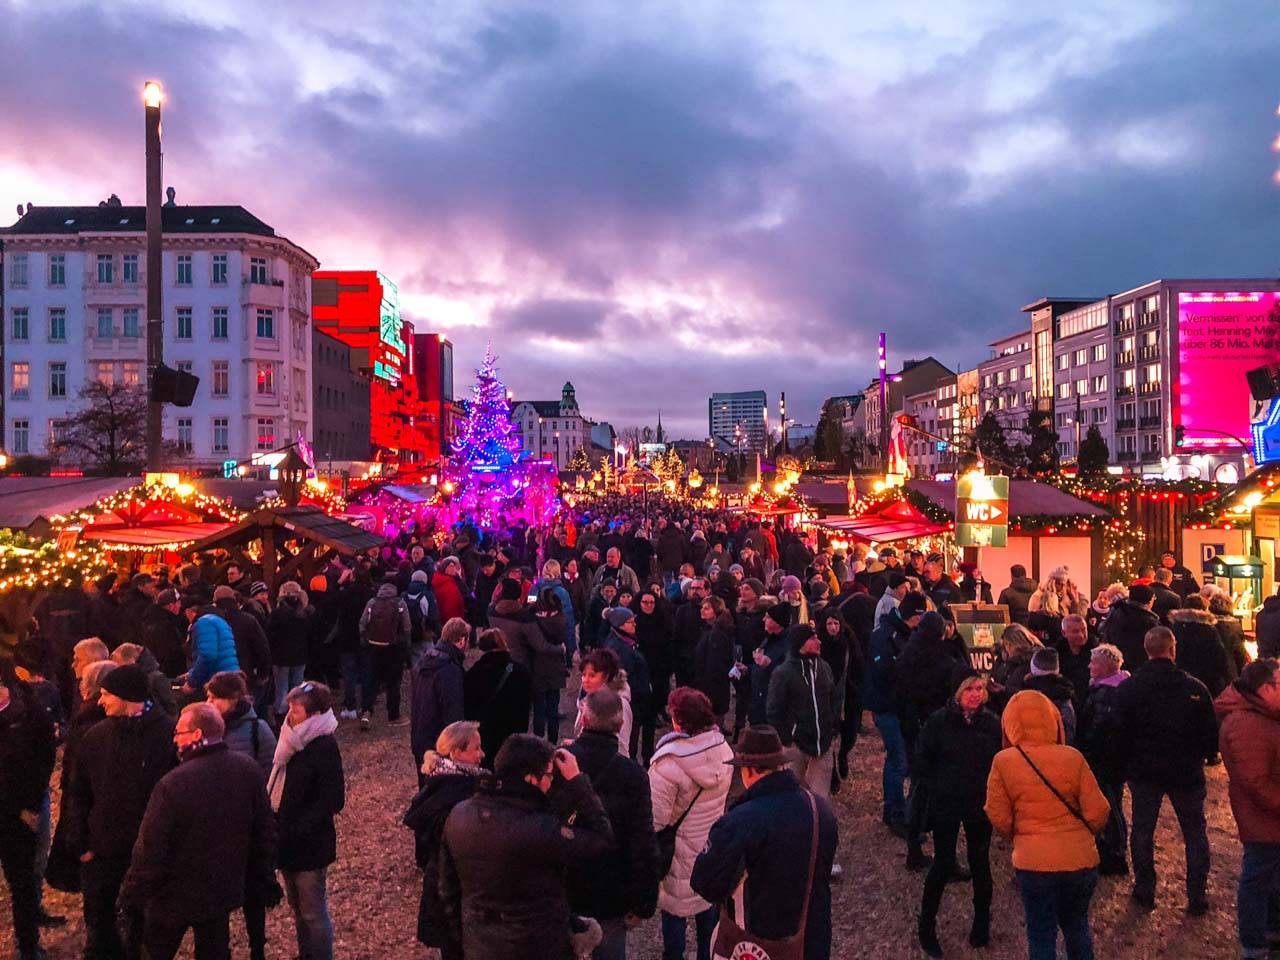 People at the St. Pauli Christmas market